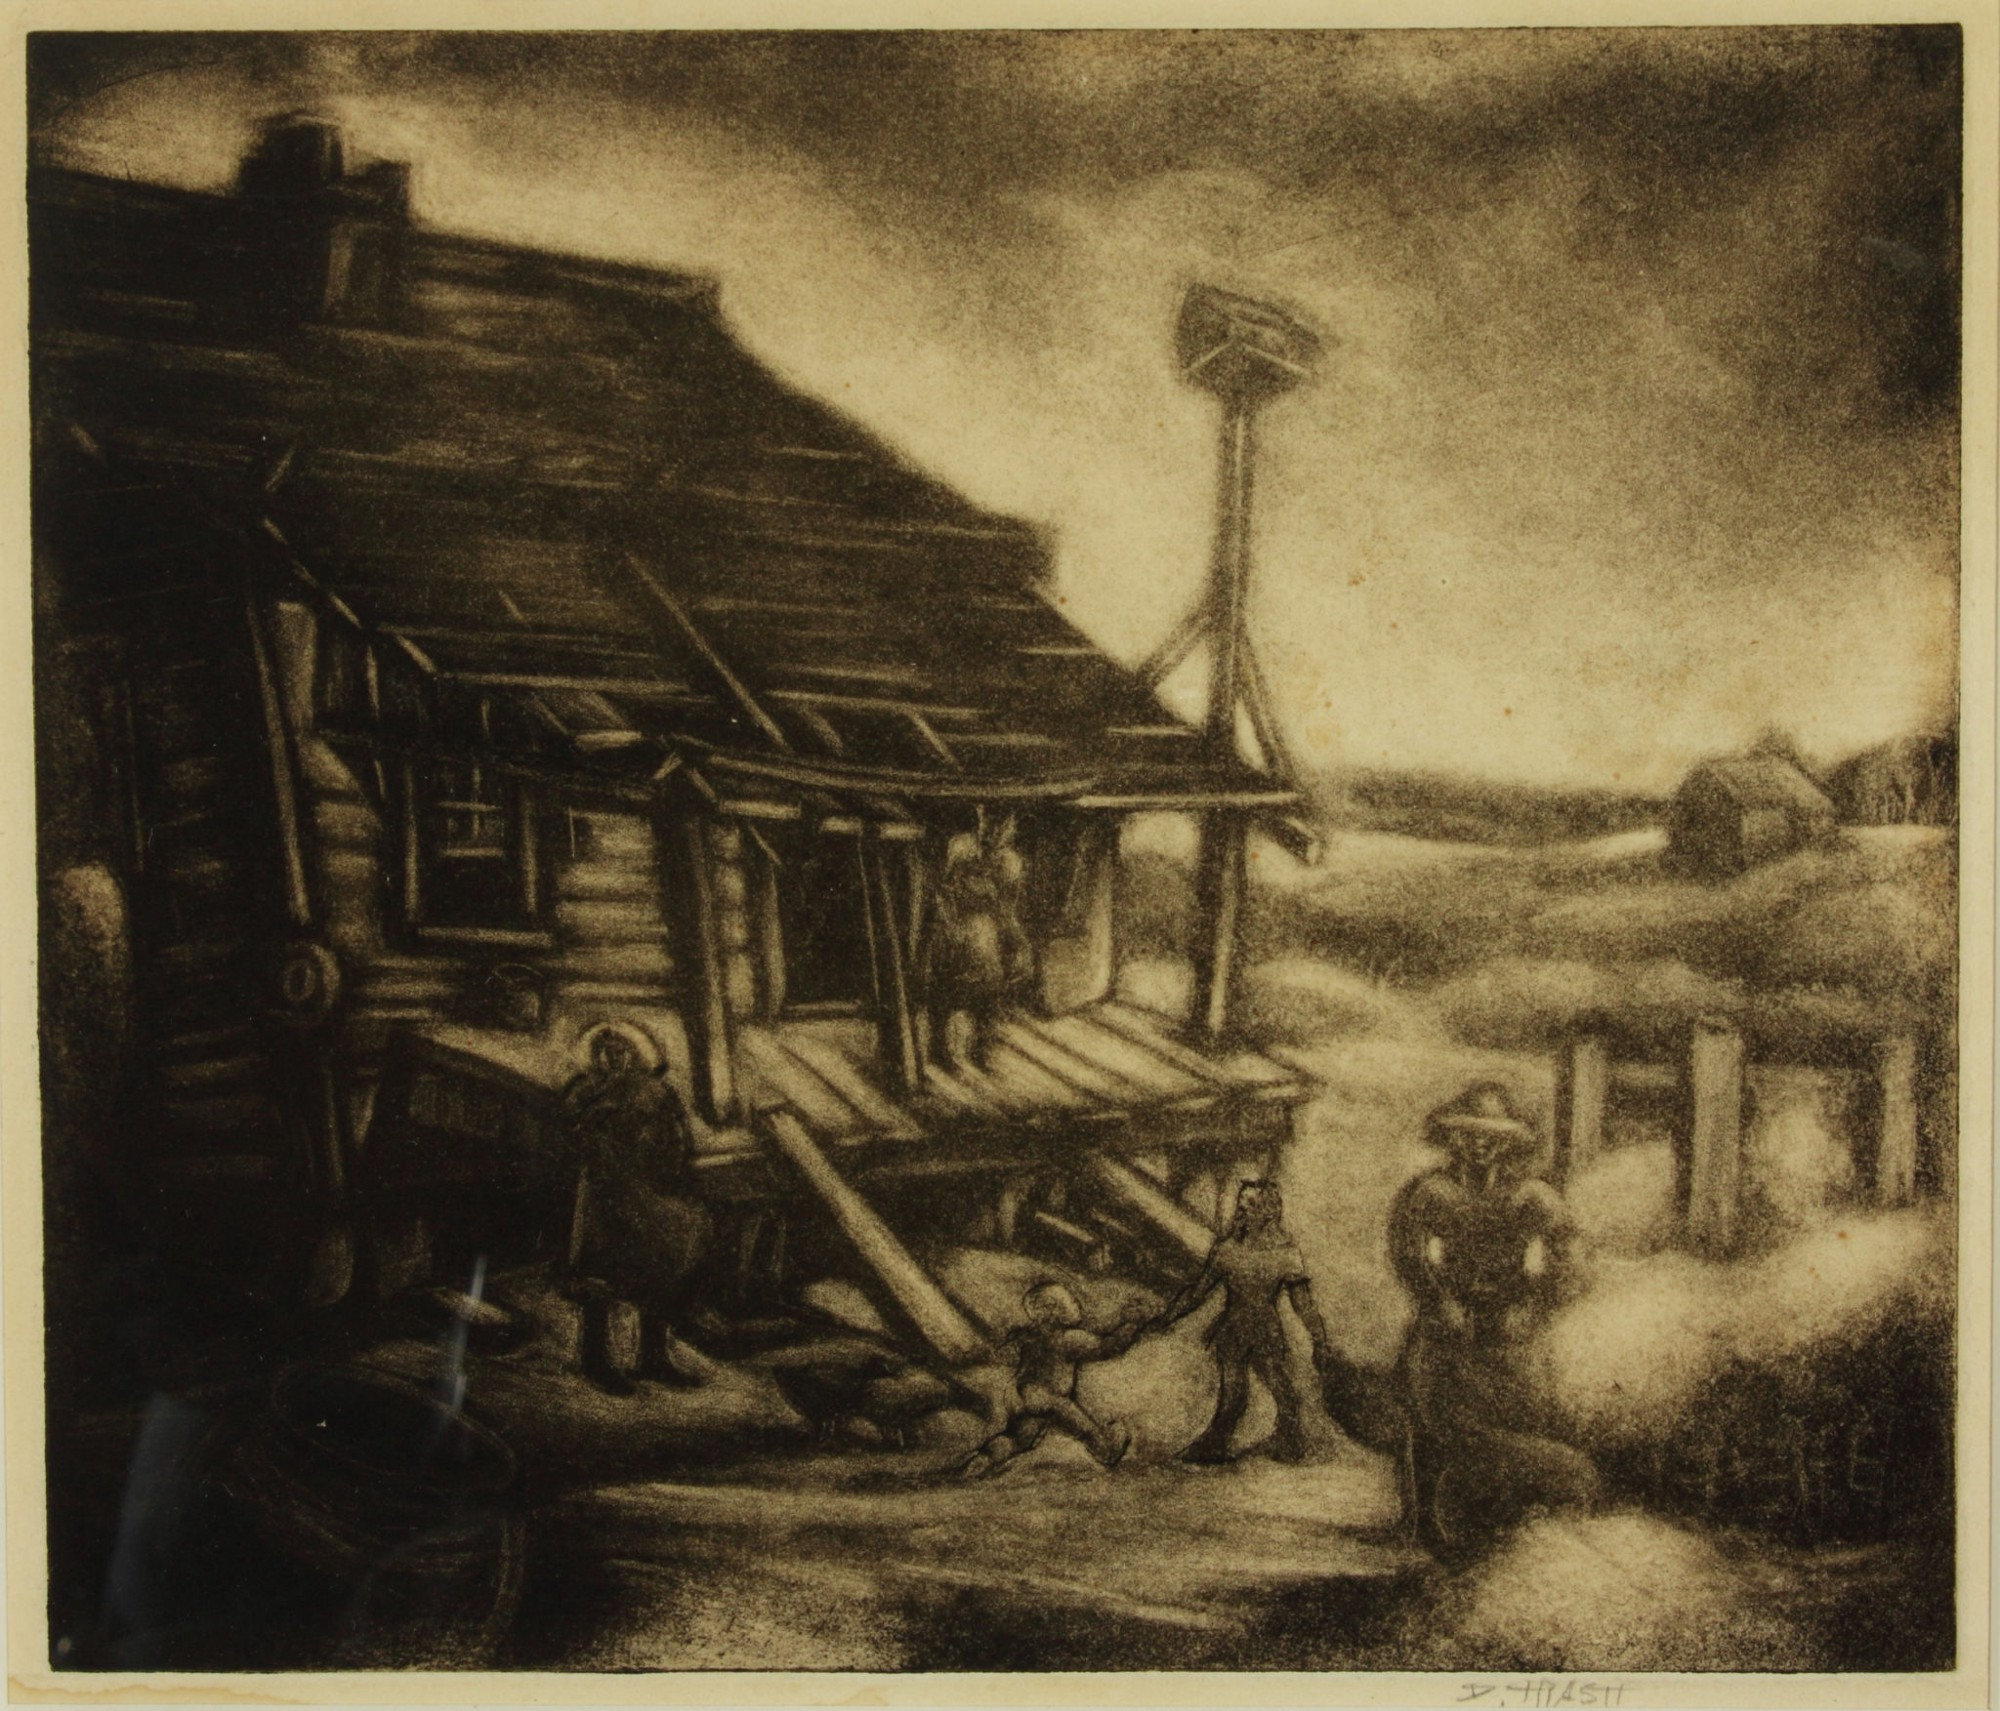 Etching of a farmhouse with a cotton field in Georgia.